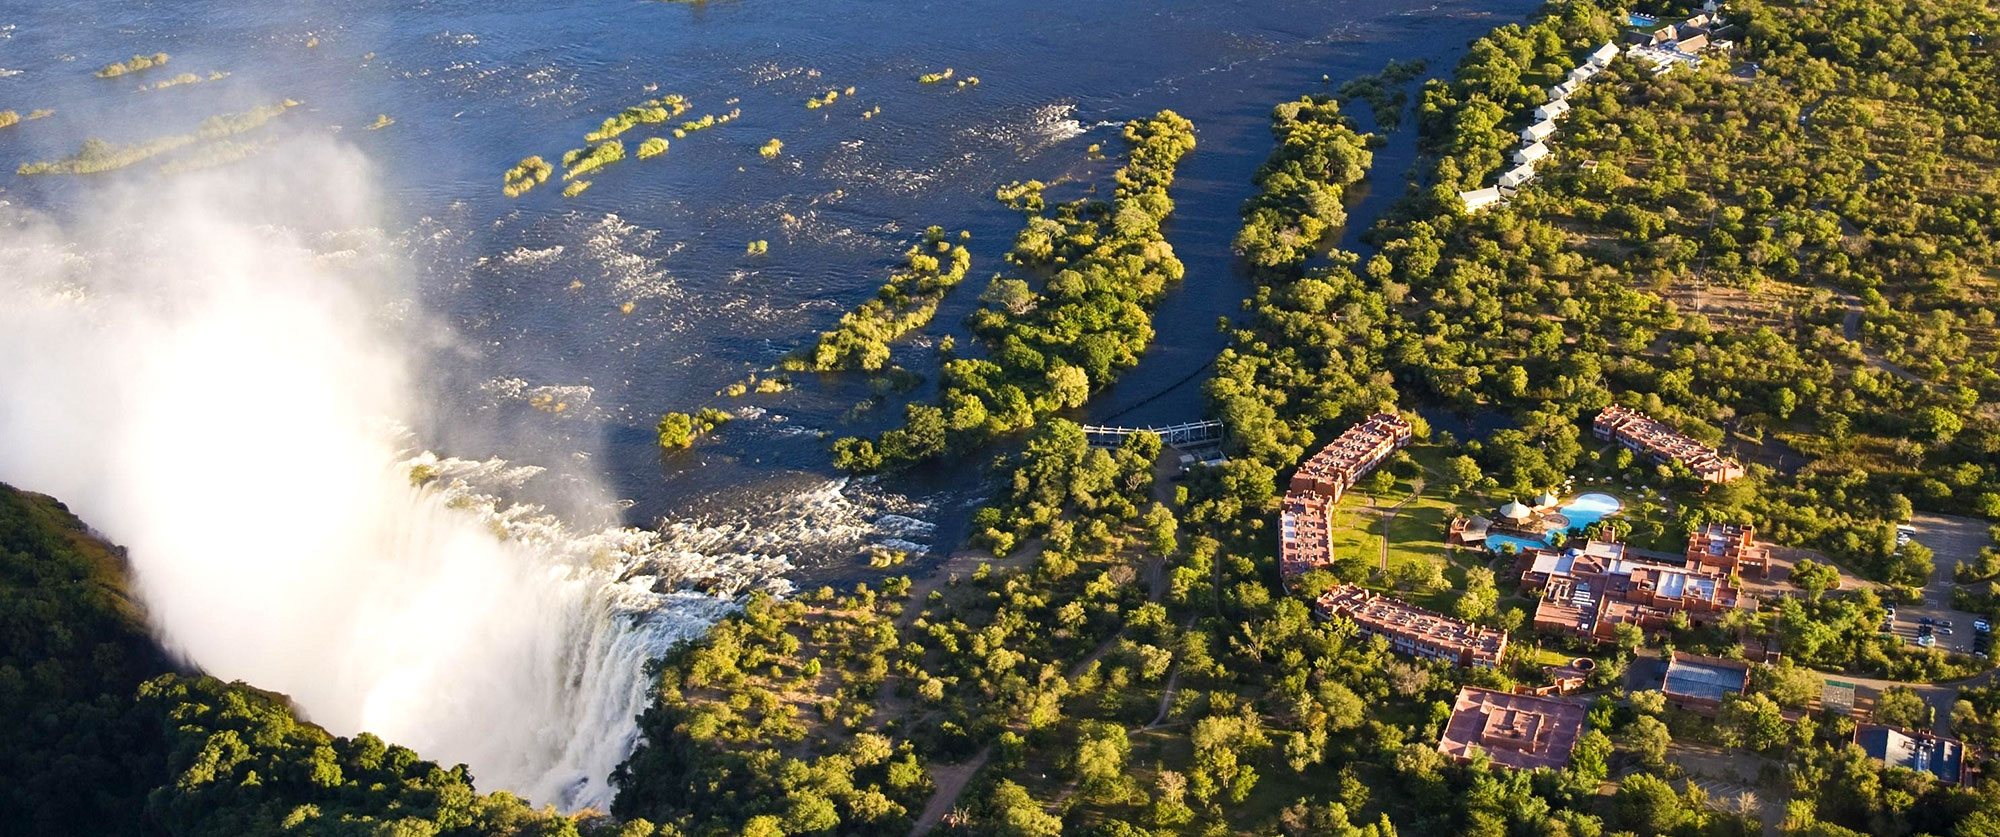 South Africa Highlights - Royal Livingstone Hotel - Victoria Falls